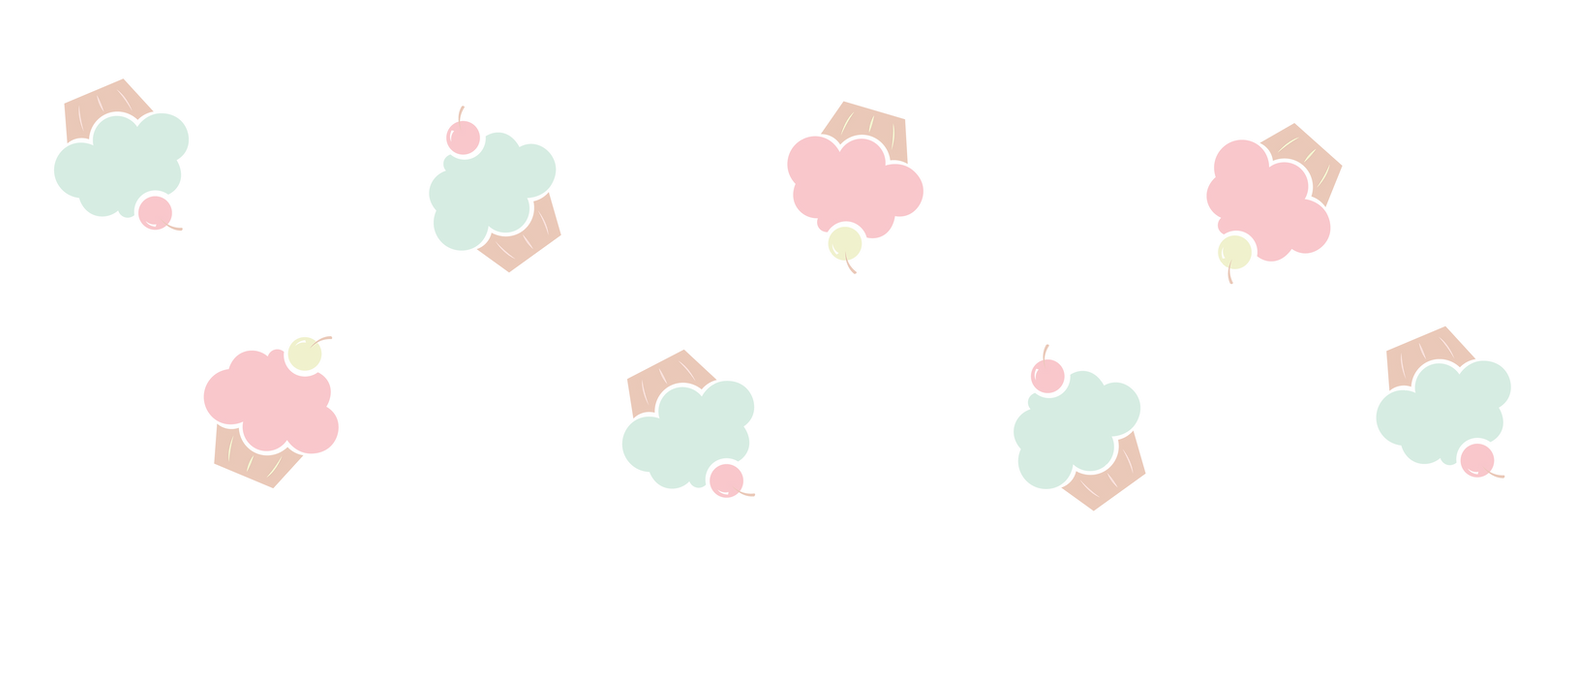 Cupcake pattern transparent-01.png